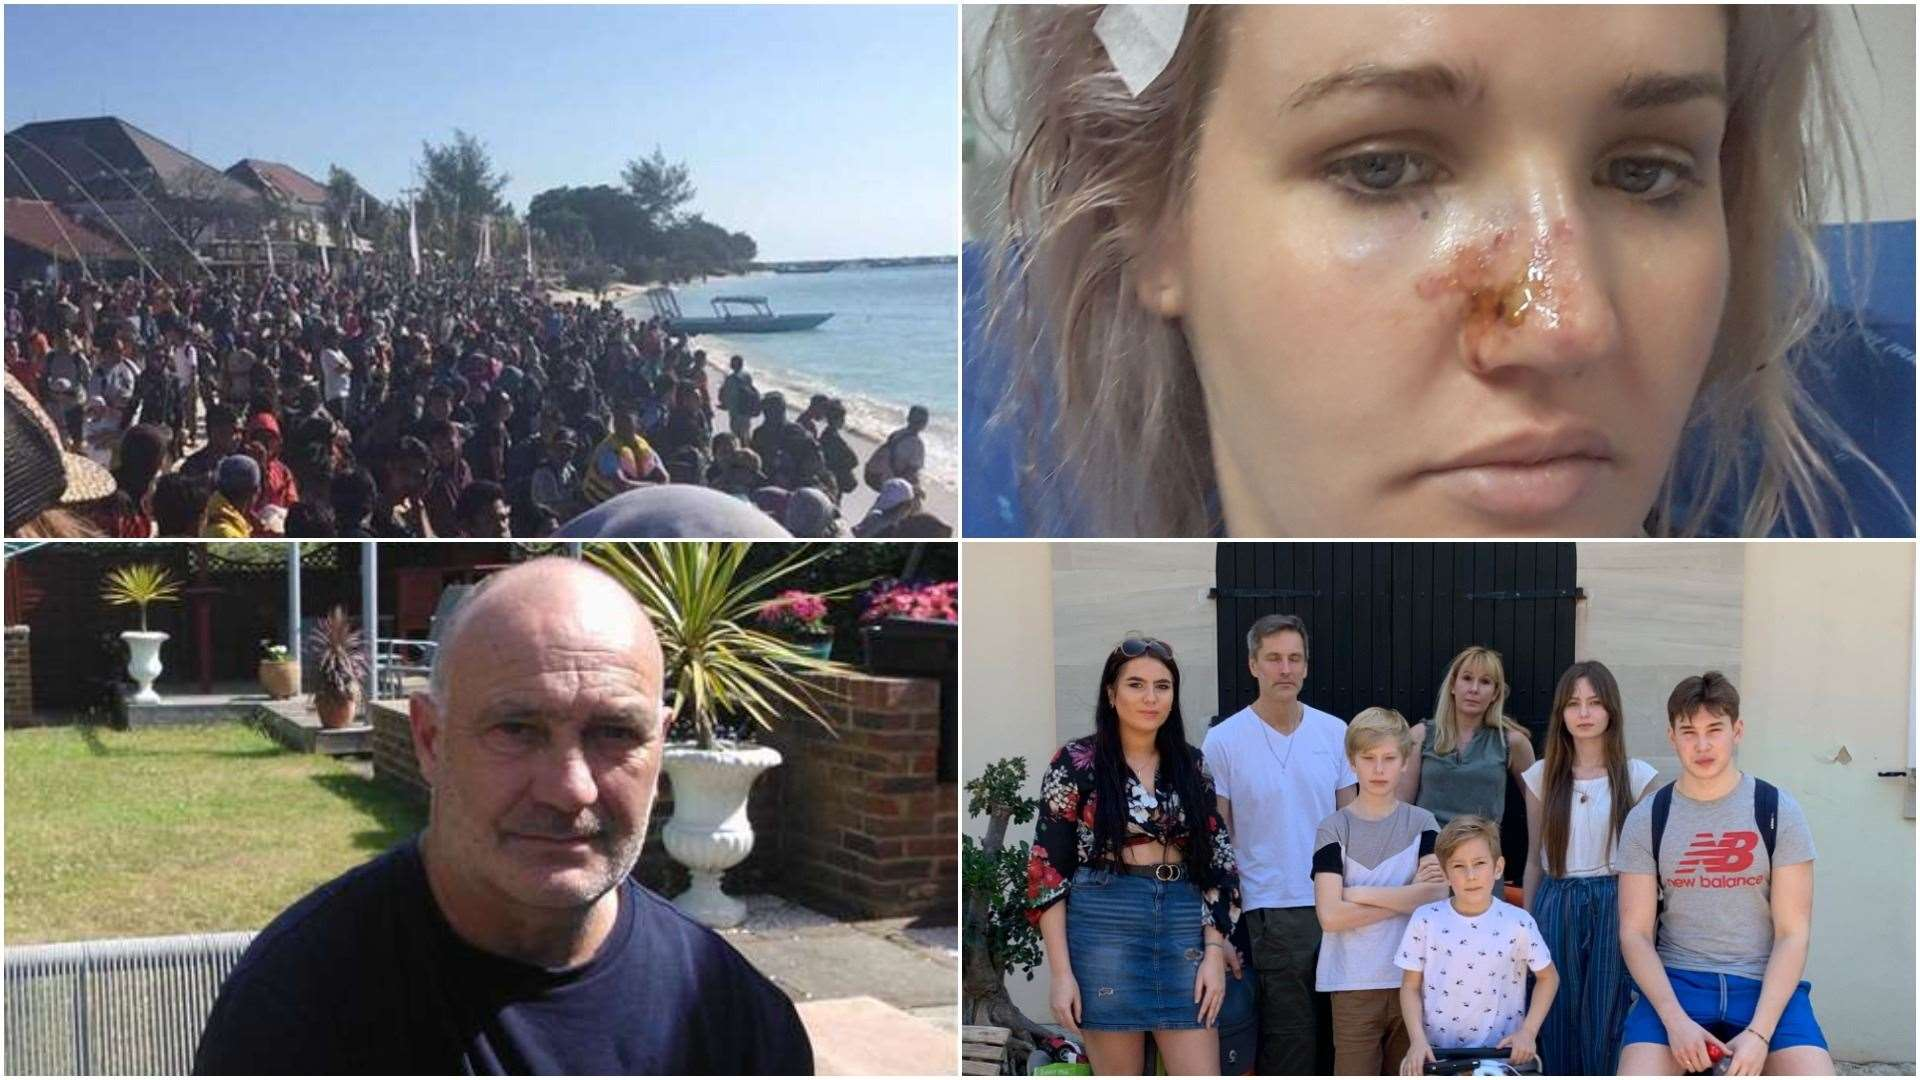 Some of the families from Kent caught up in some holidays from hell